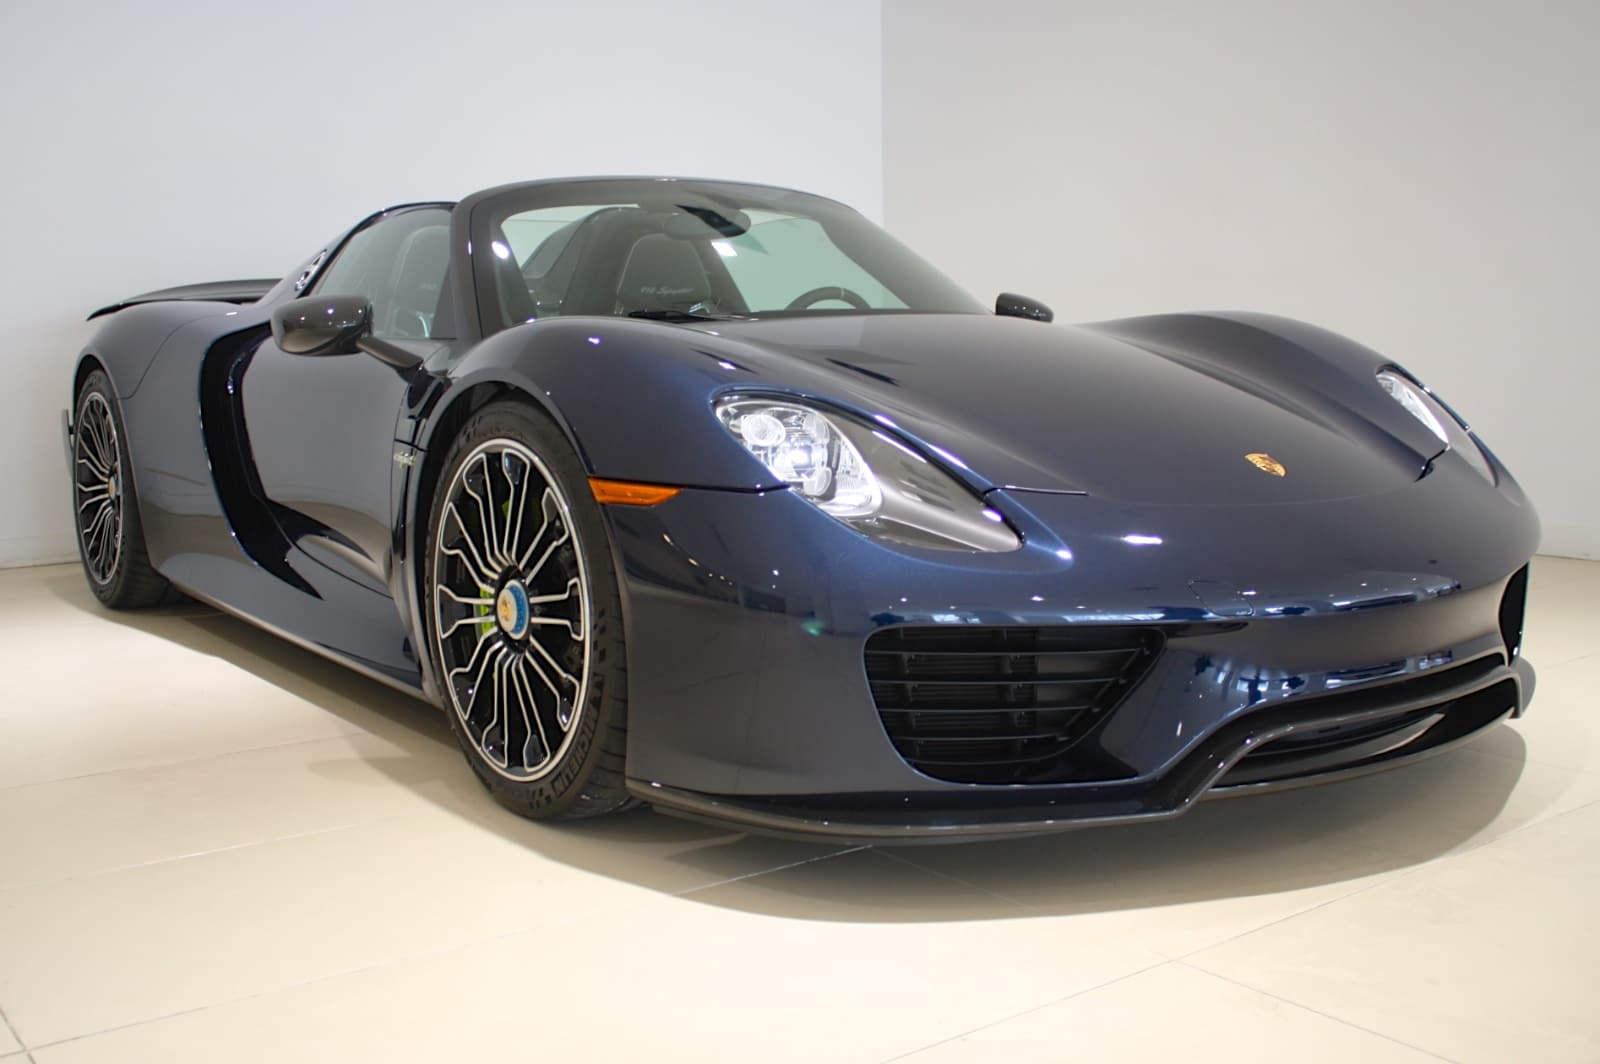 used 2015 porsche 918 spyder weissach package for sale freeport ny wp0ca2. Black Bedroom Furniture Sets. Home Design Ideas